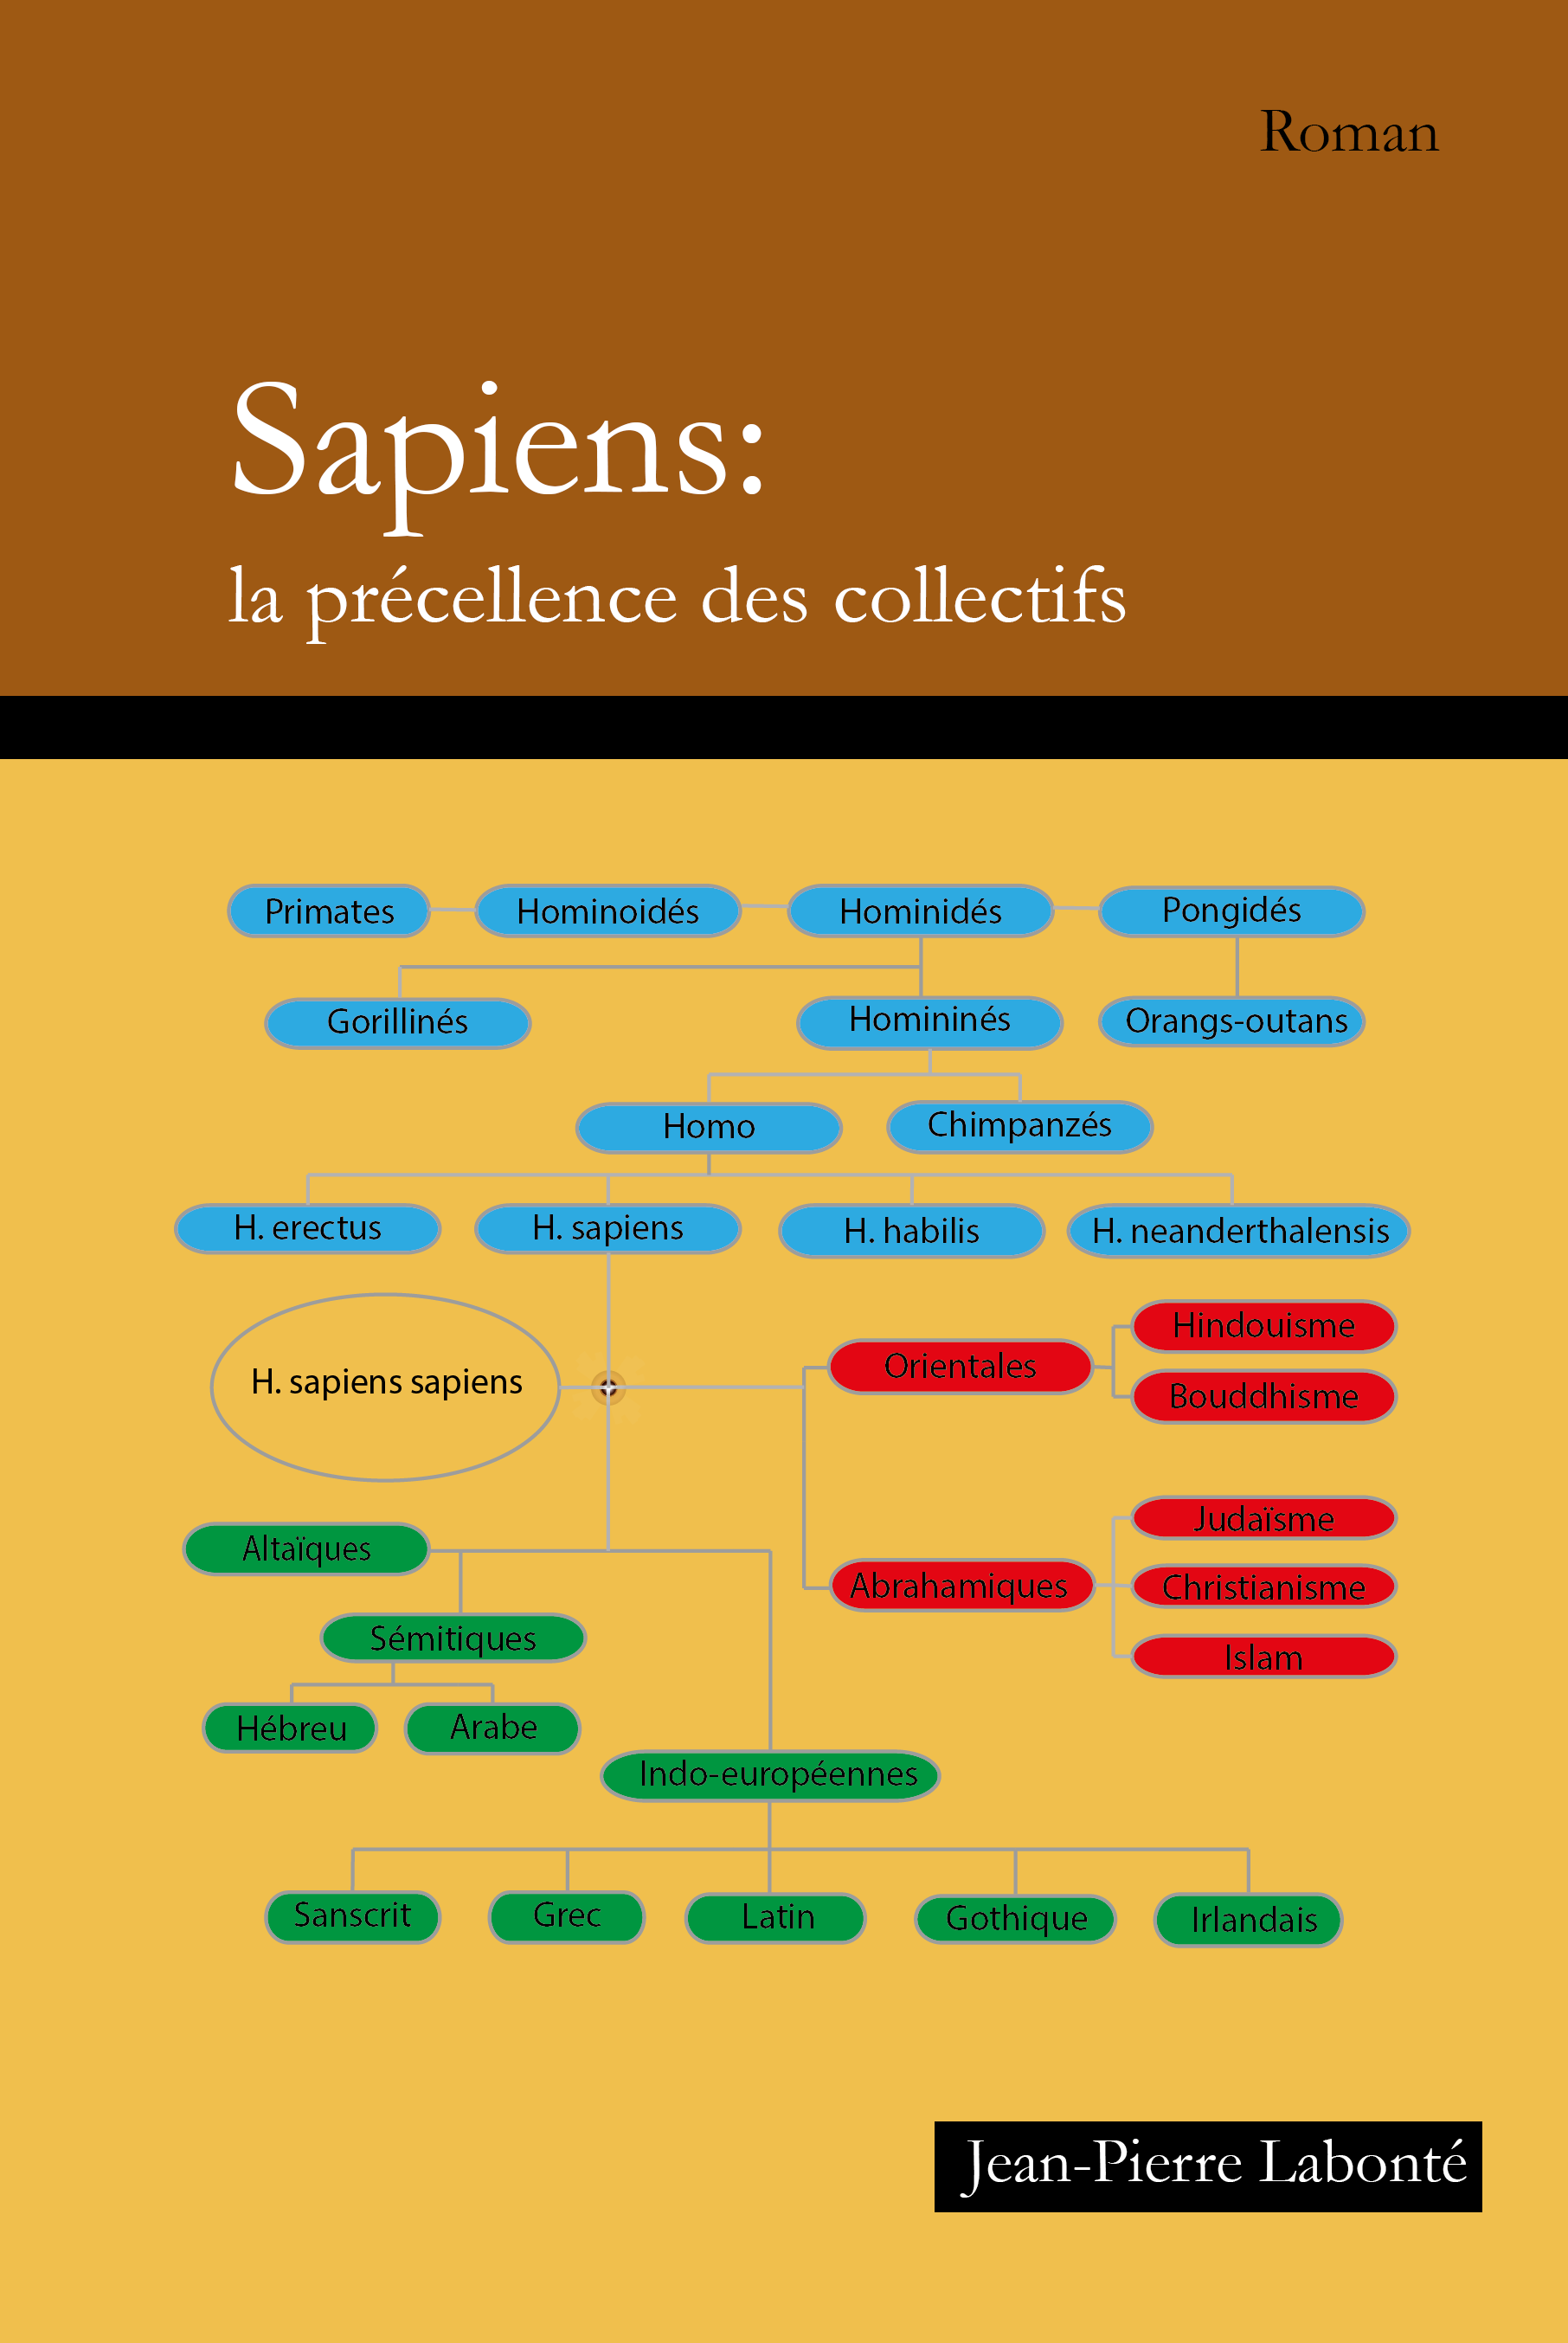 Sapiens: la pr?cellence des collectifs